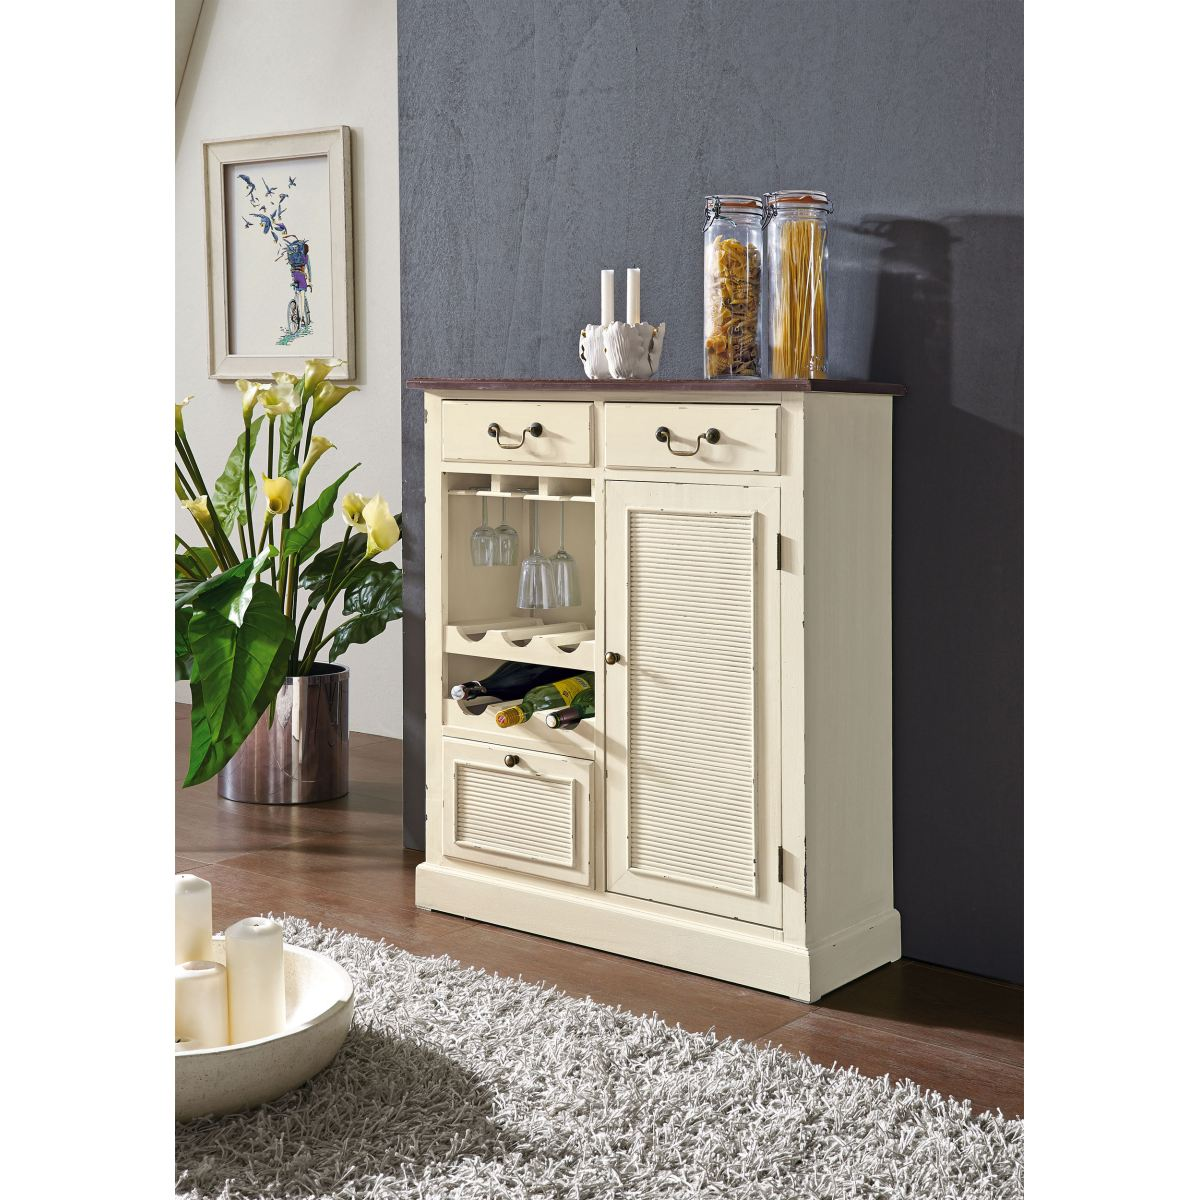 ger umiger barschrank im landhausstil in der farbe creme porta. Black Bedroom Furniture Sets. Home Design Ideas